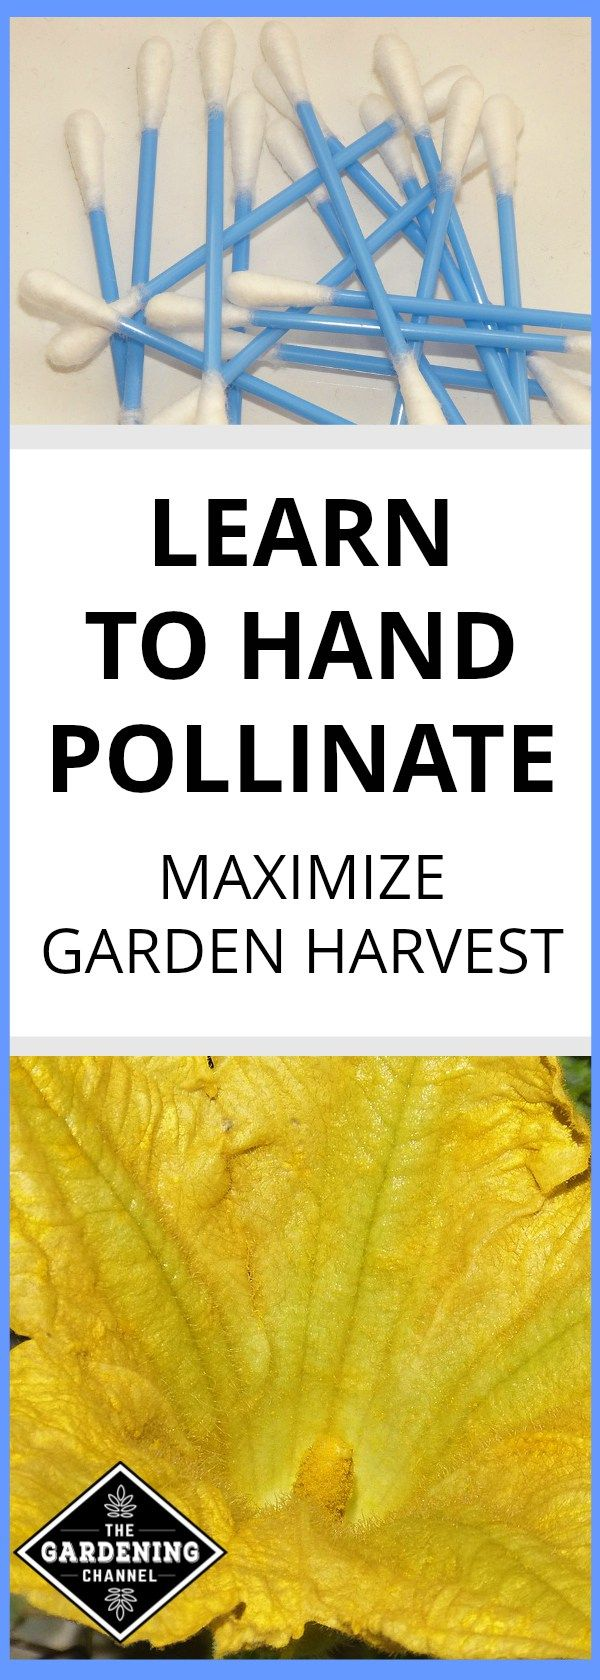 Increase vegetable garden yields by pollinating the garden. Learn how to hand pollinate using this method.